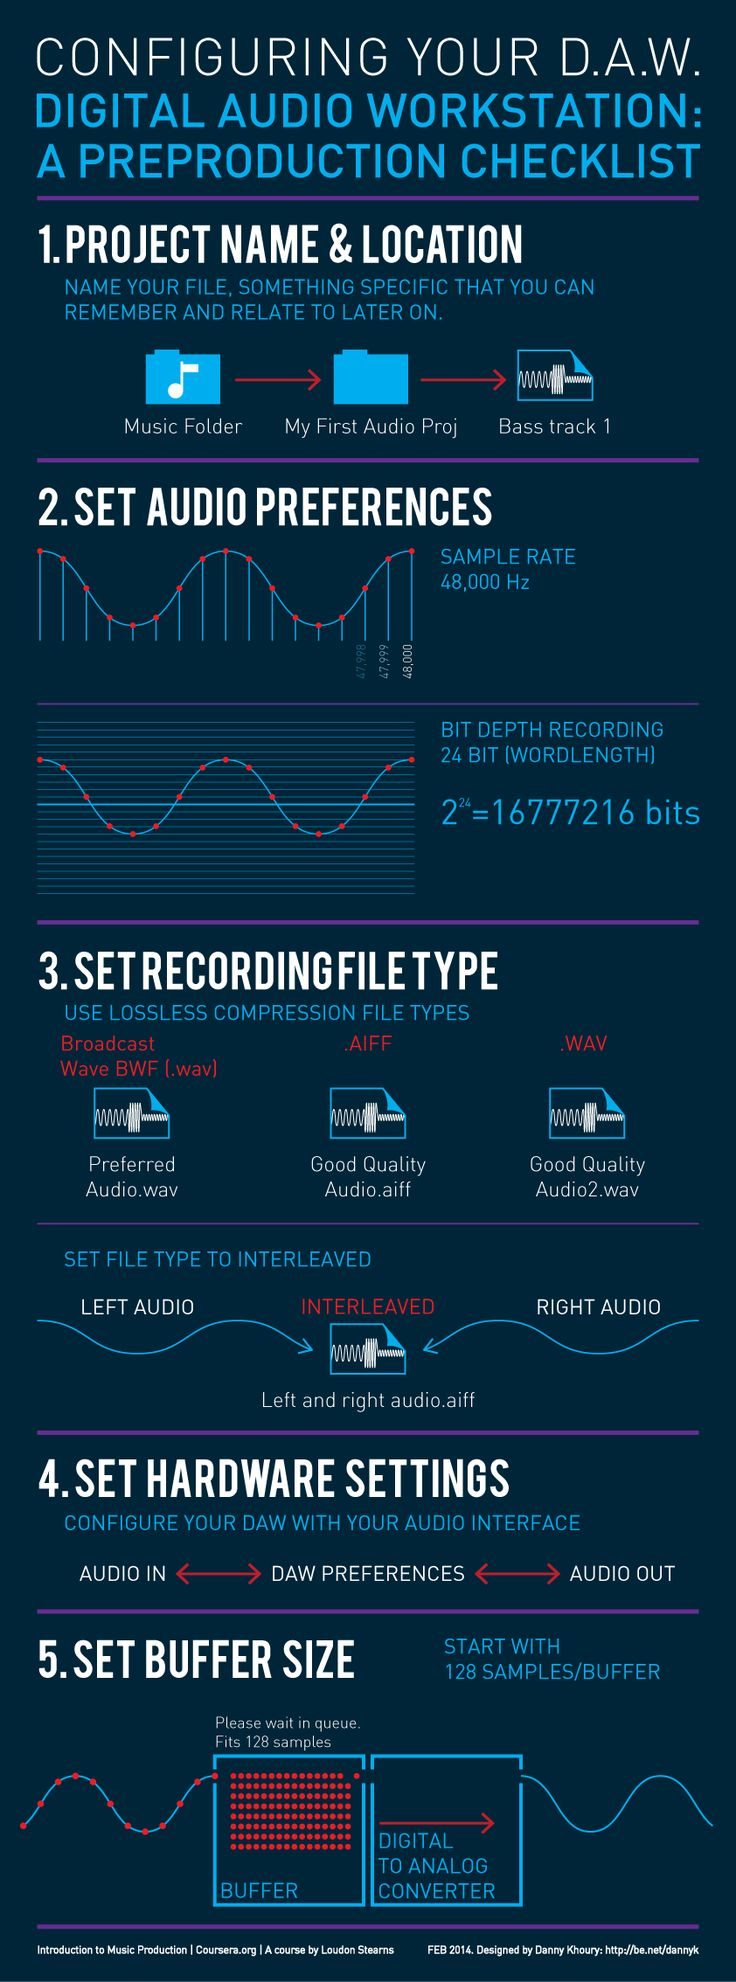 daw-assignment-2-infographic.gif 842×2268 pixels